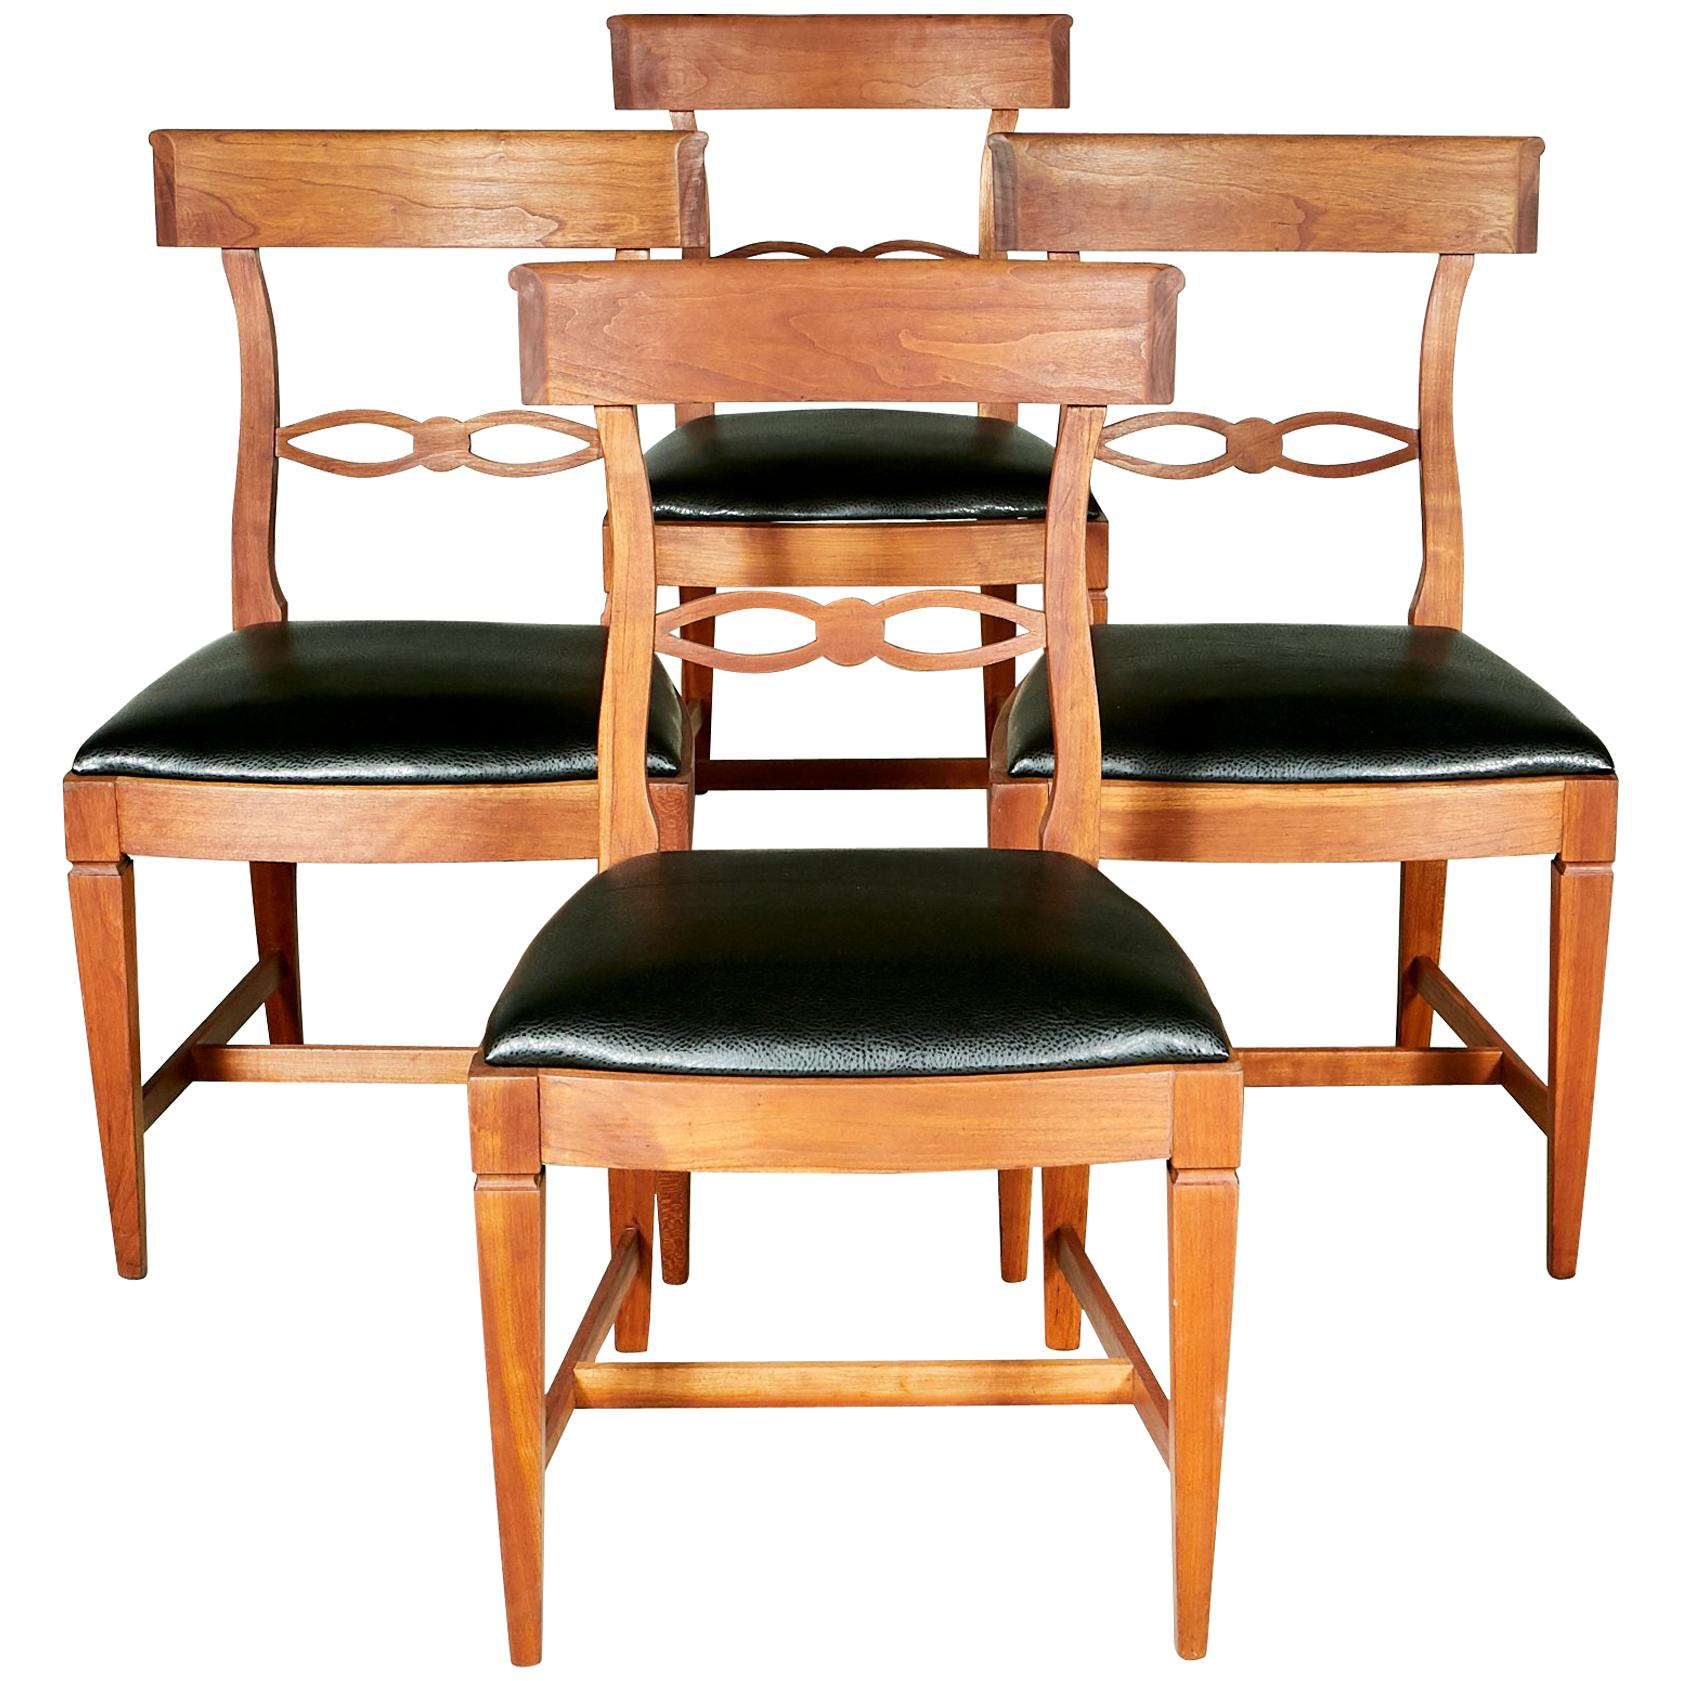 1950s Kindel Cherrywood Dining Room Chairs, Set Of 4